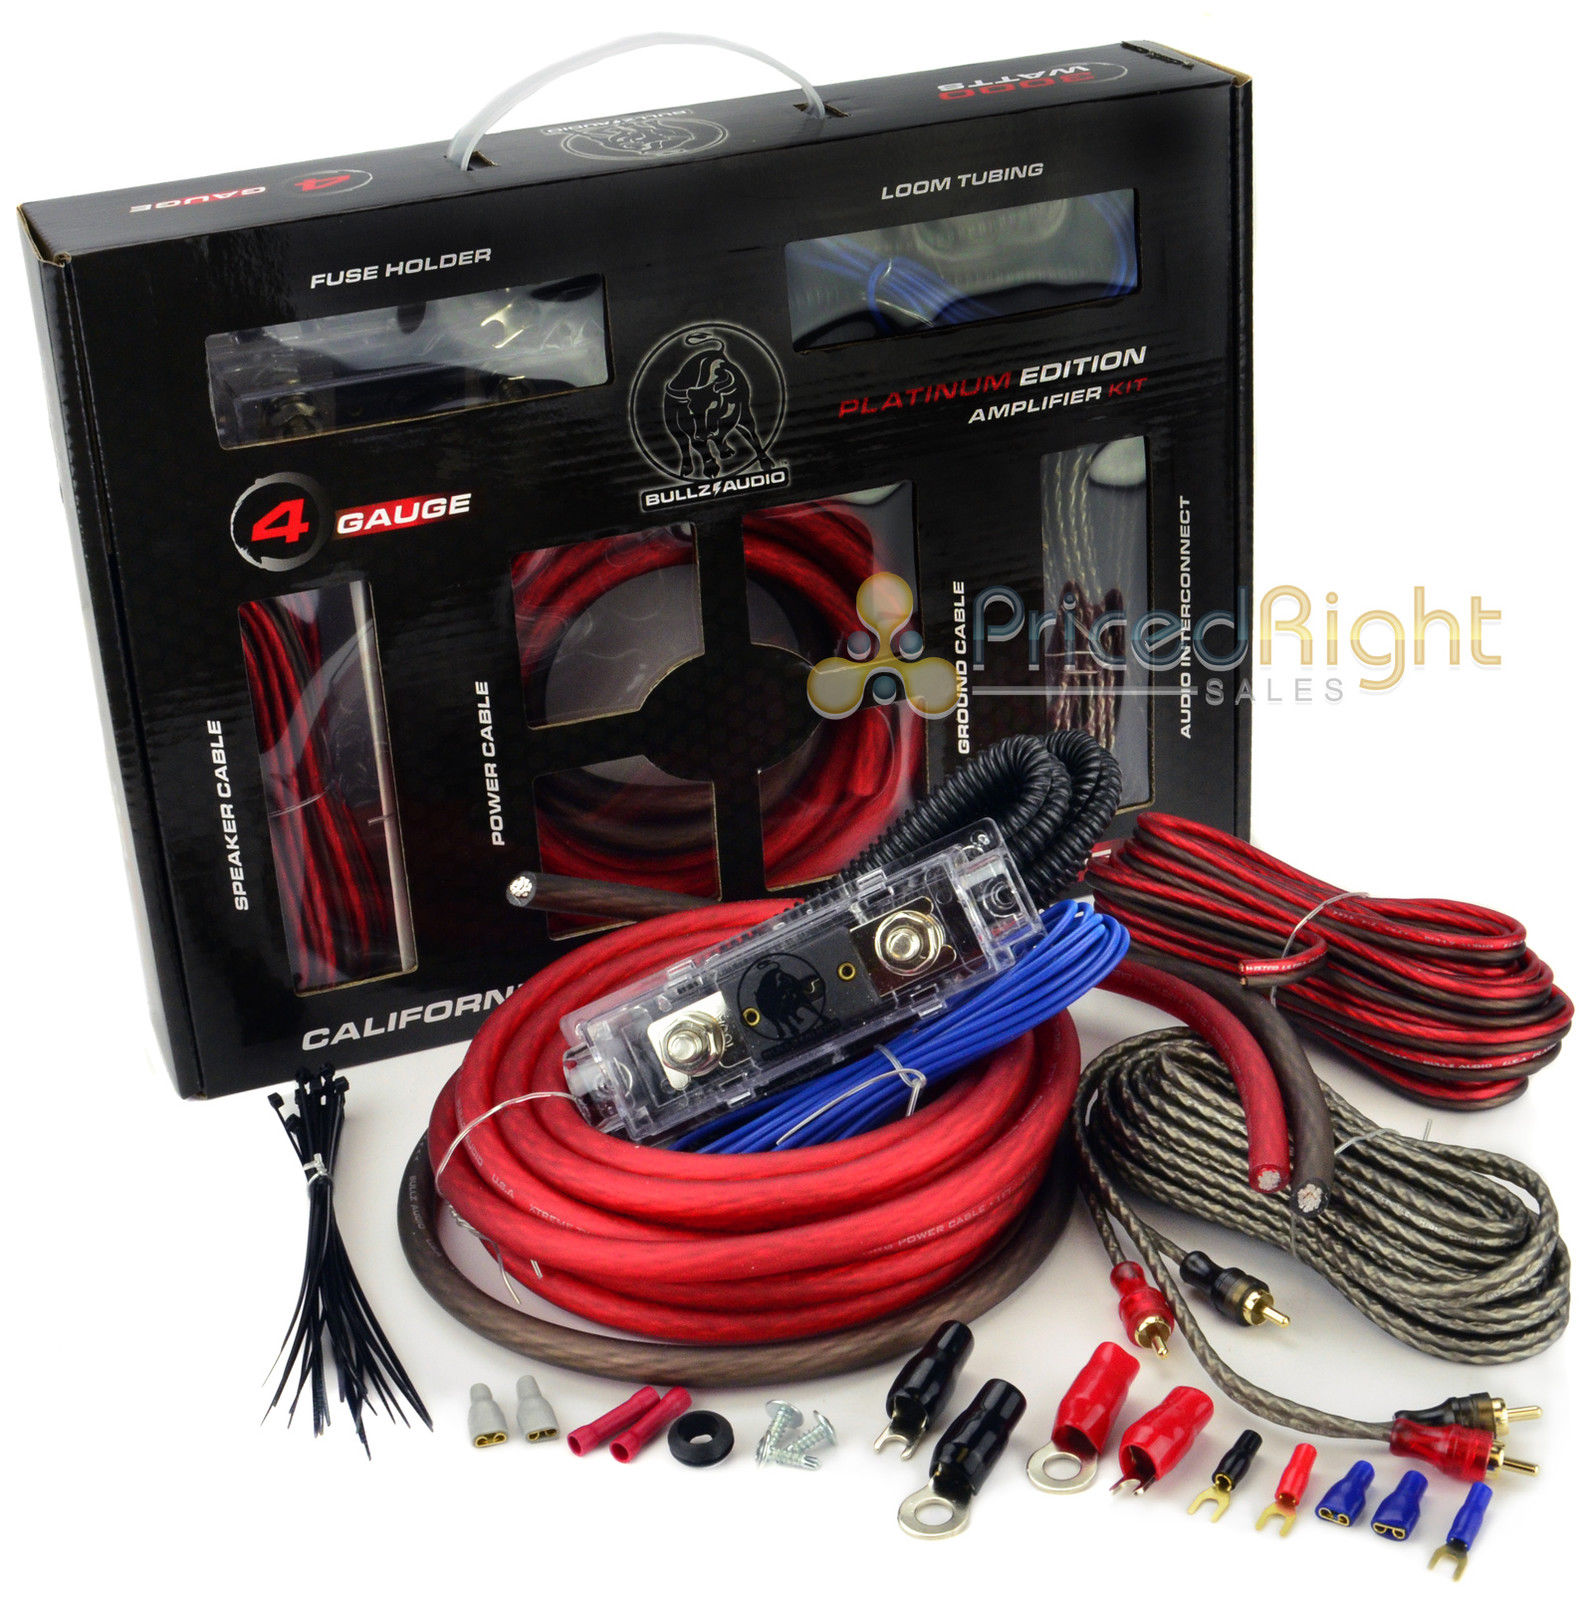 Remarkable Bullz Car Audio Red 4 Gauge Pro Amp Amplifier Power Wiring Kit Wiring Digital Resources Dimetprontobusorg